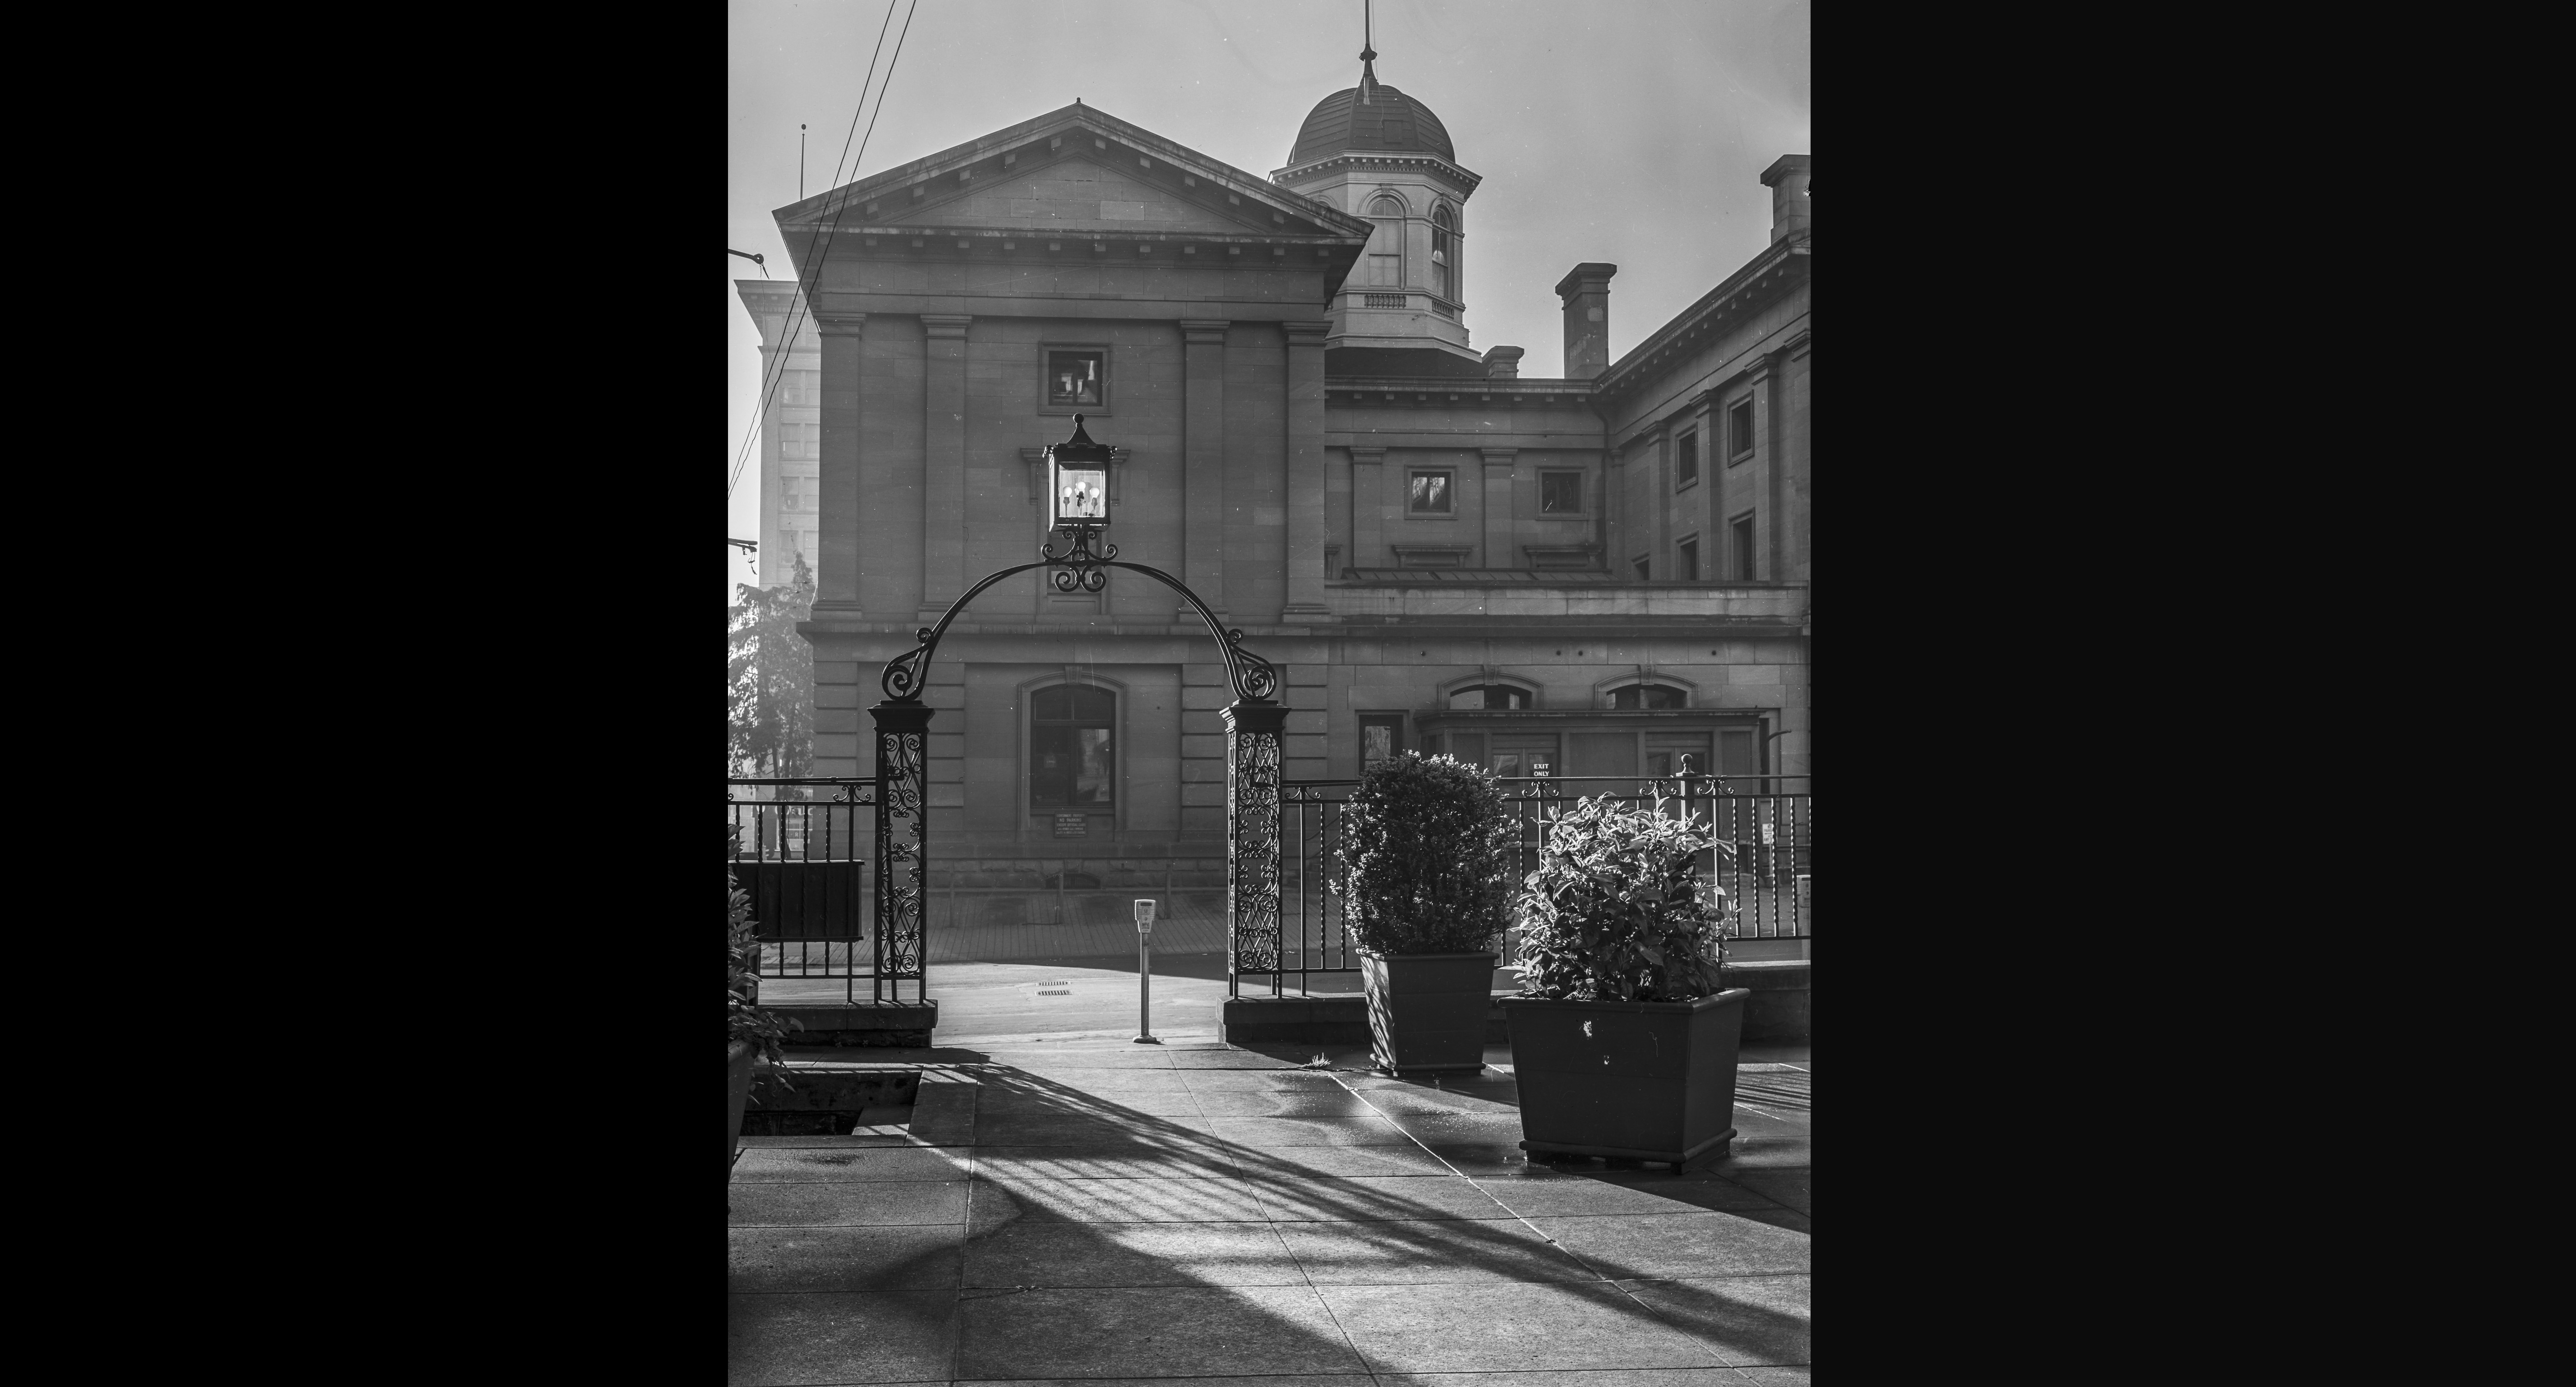 Pioneer Courthouse, from the Portland Hotel, April 17, 1939